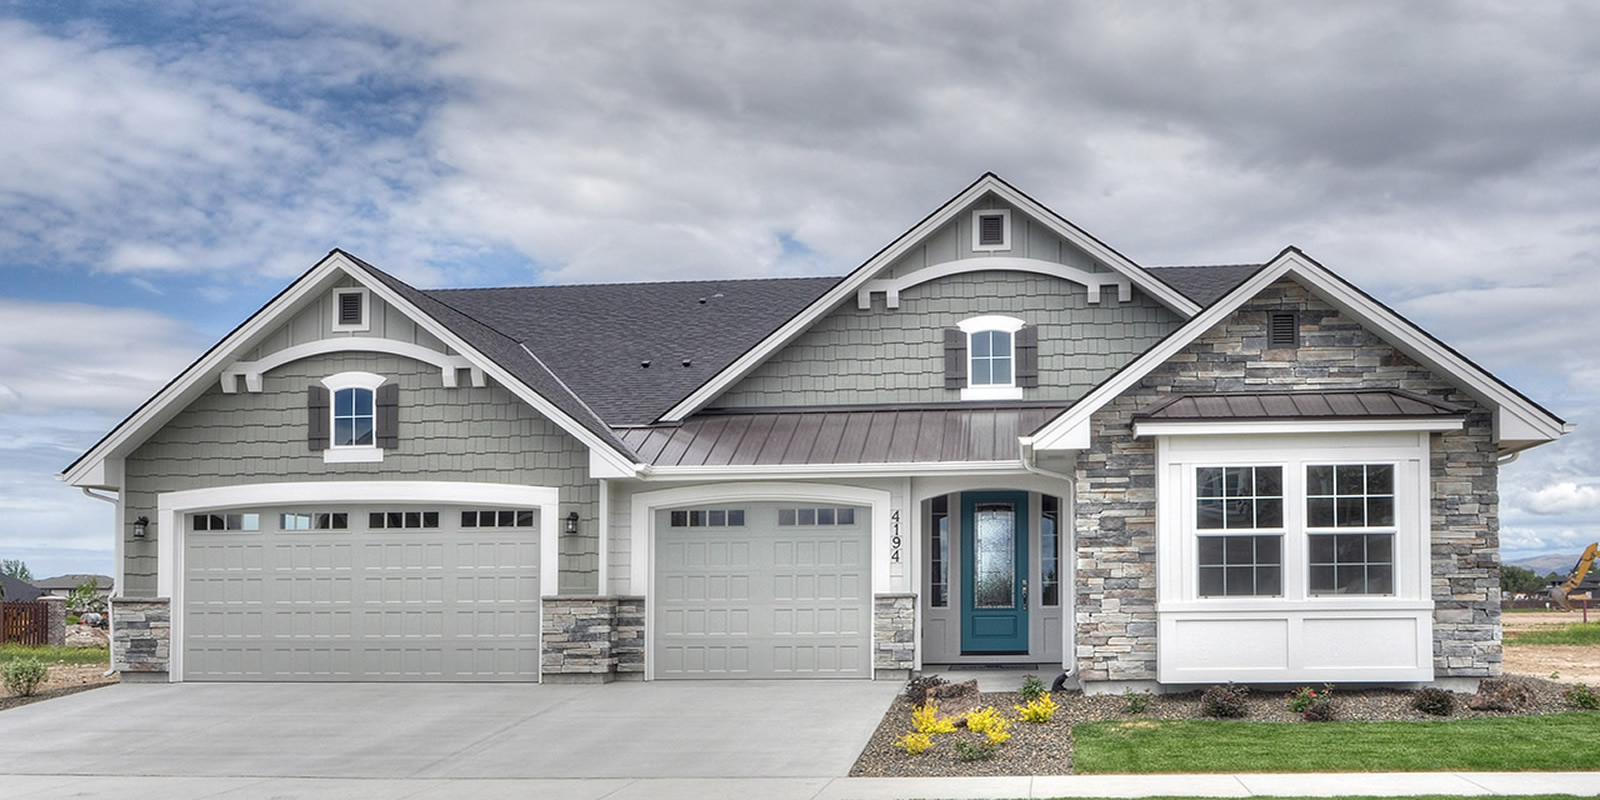 Custom home builder in idaho build on your land autos post for Building a house in idaho